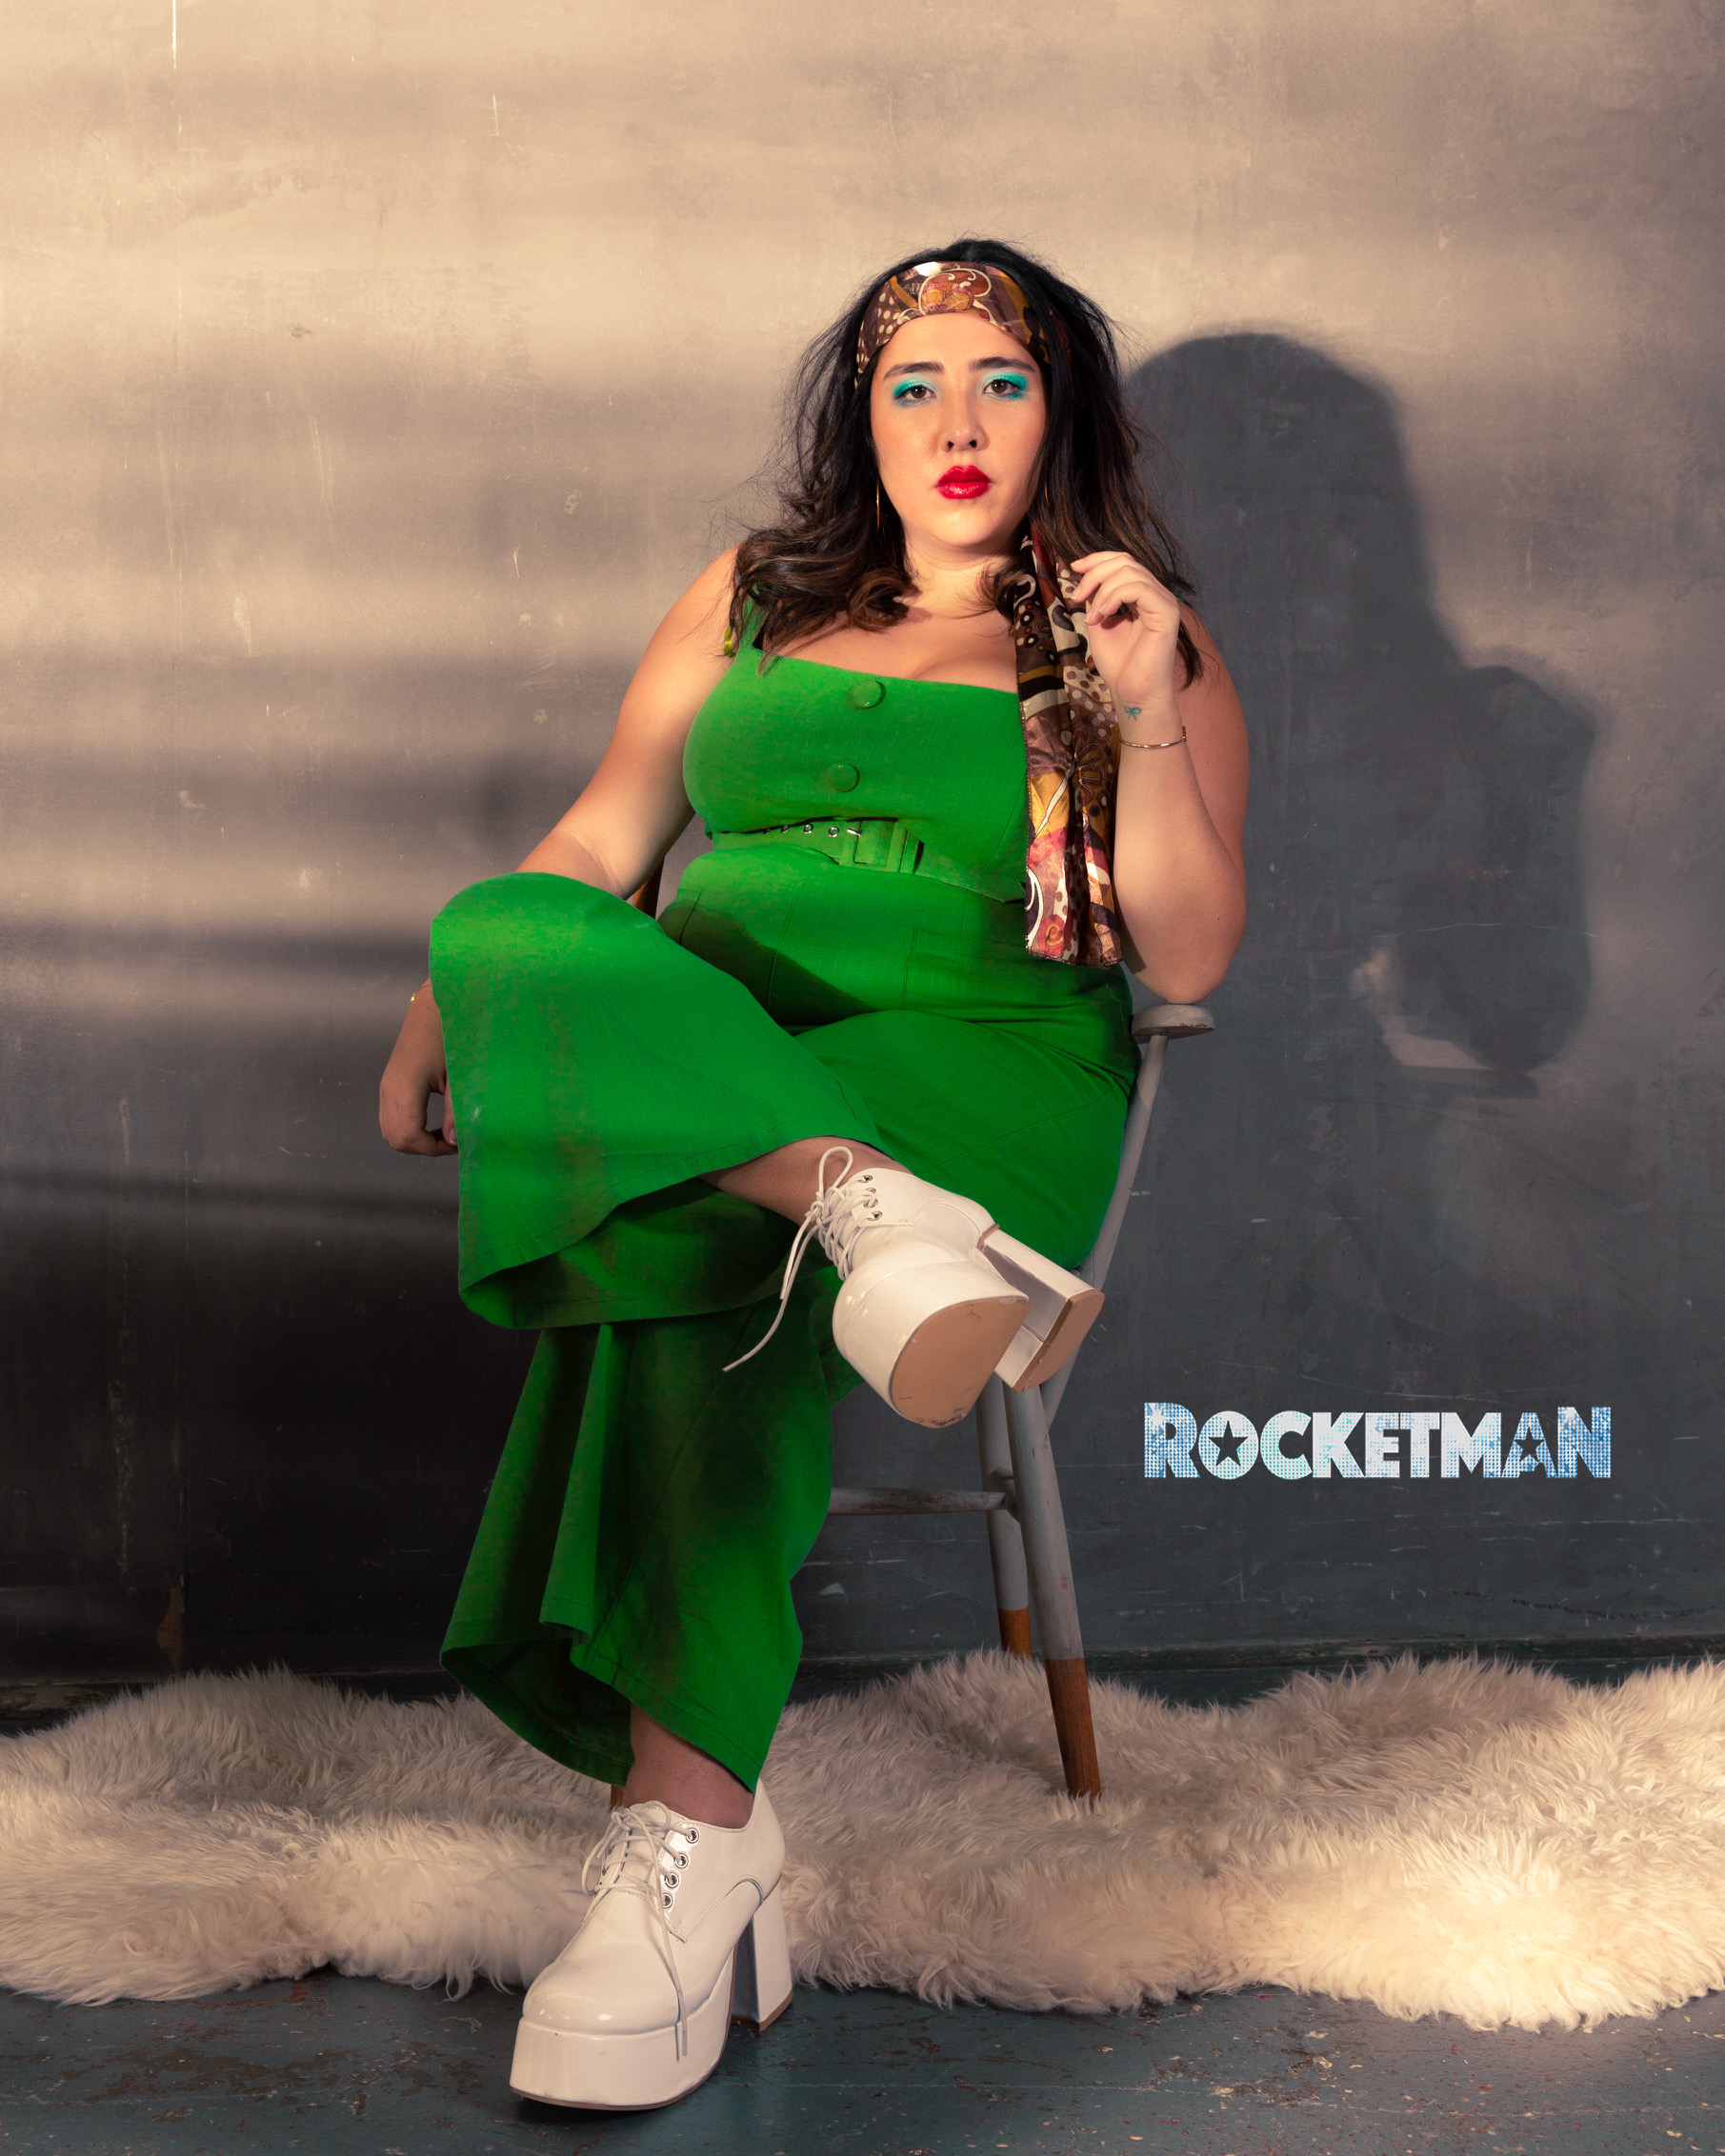 Rocketman Shoot for Paramount